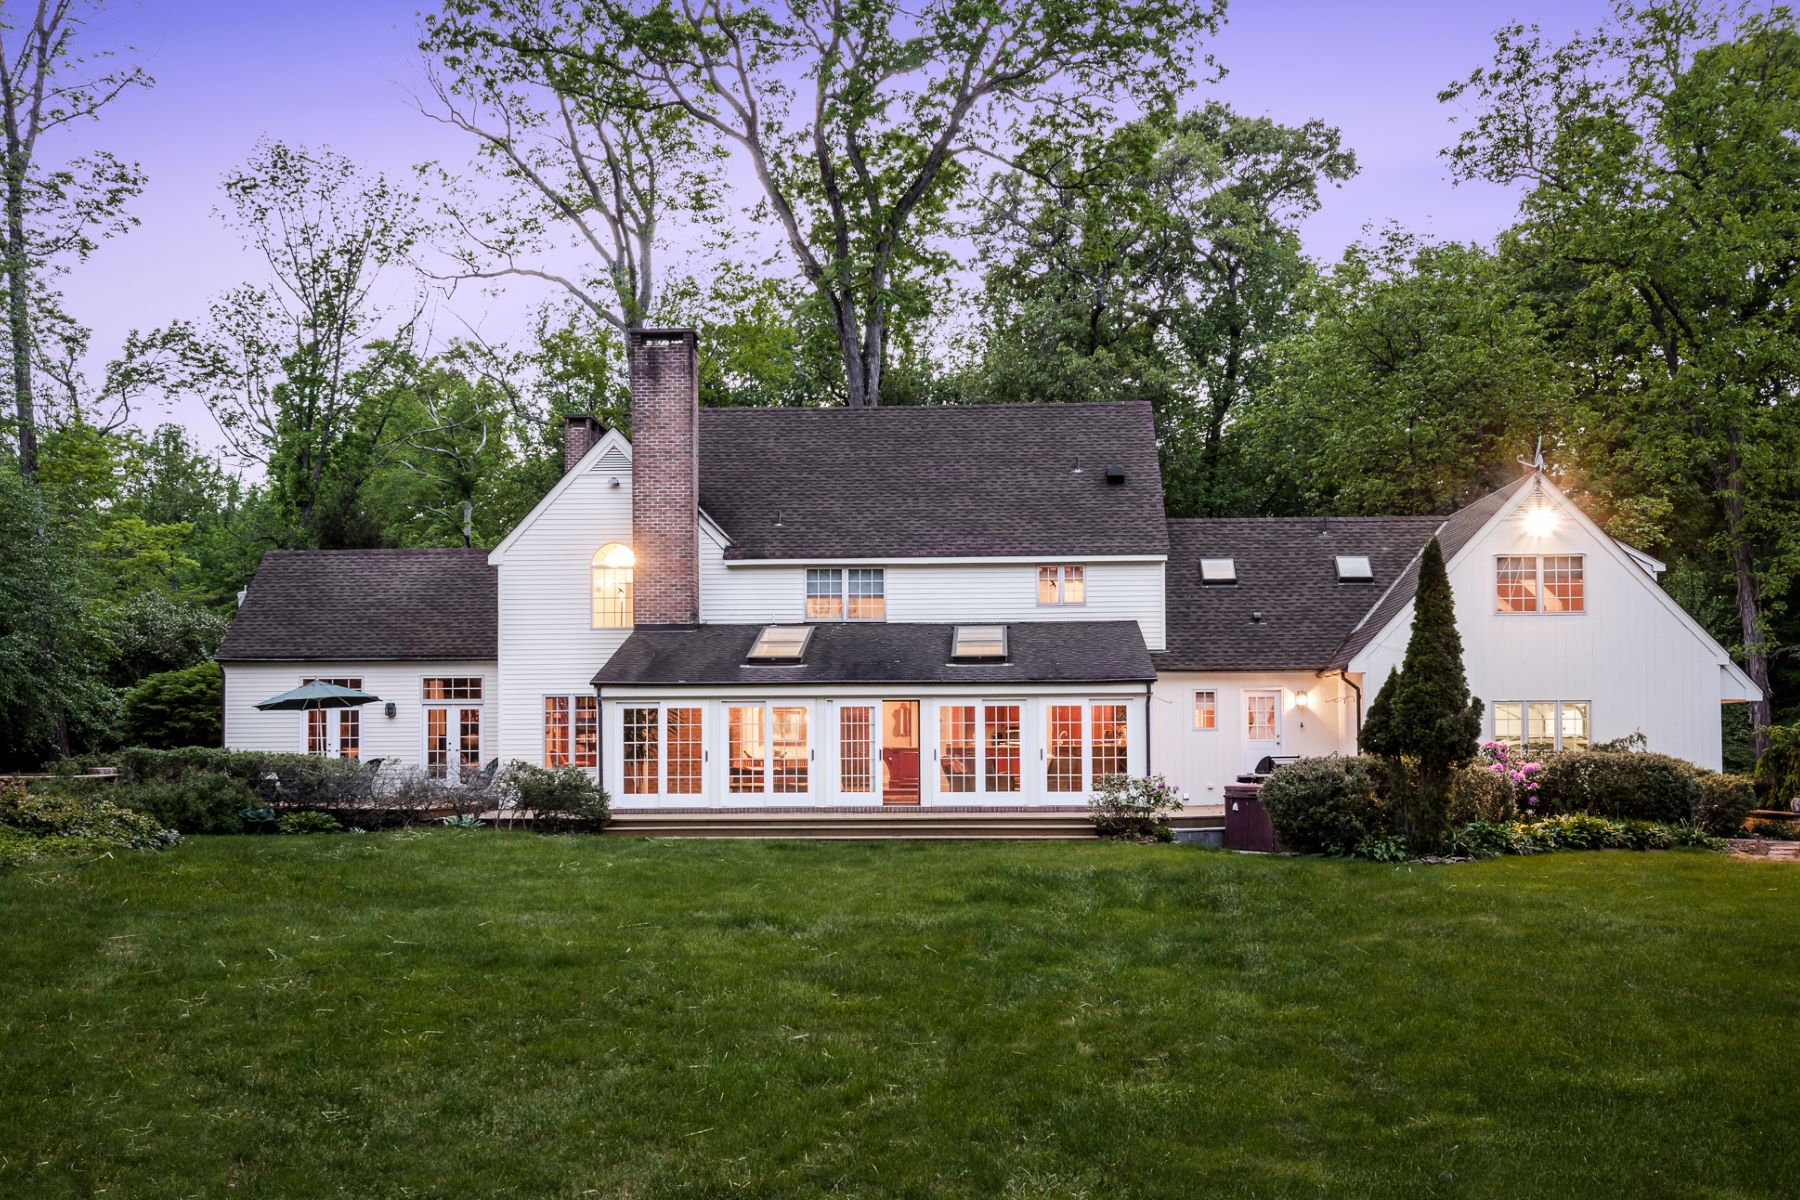 Additional photo for property listing at A Majestic Setting for Distinctive Lawrence Estate - Lawrence Township 4497 Province Line Road Princeton, Нью-Джерси 08540 Соединенные Штаты